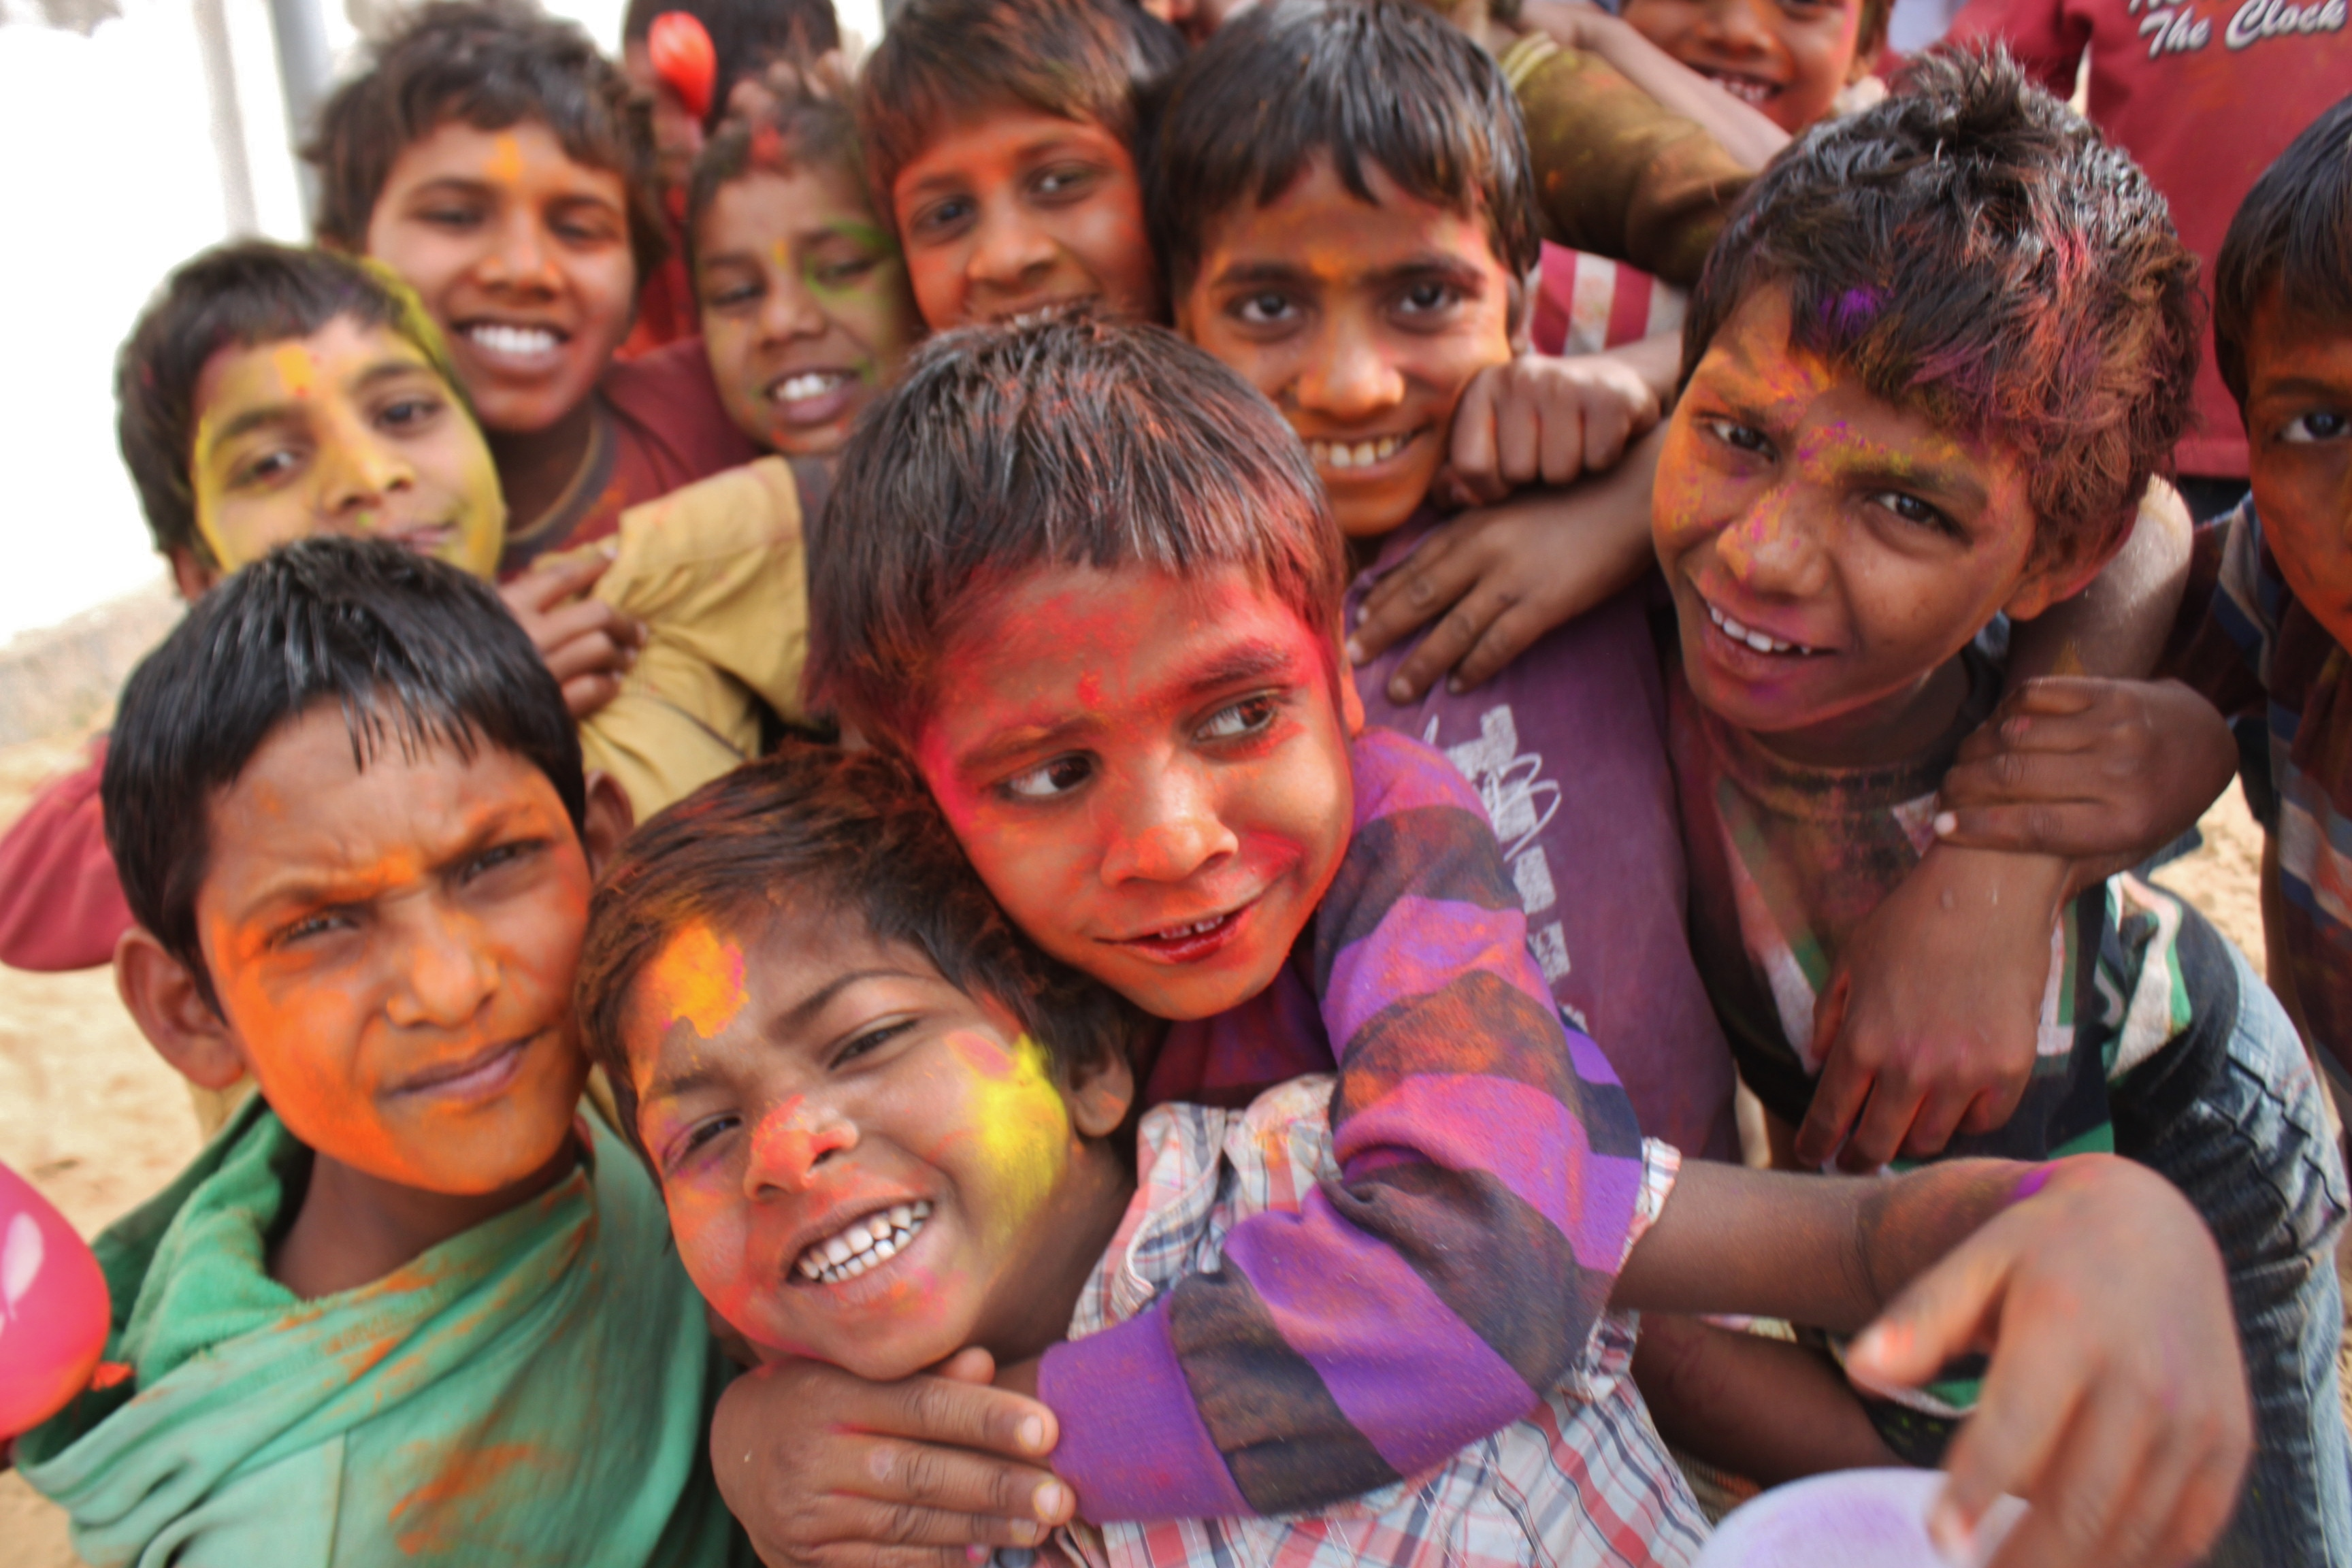 Photo of children celebrating festival of colors in Jaipur, India